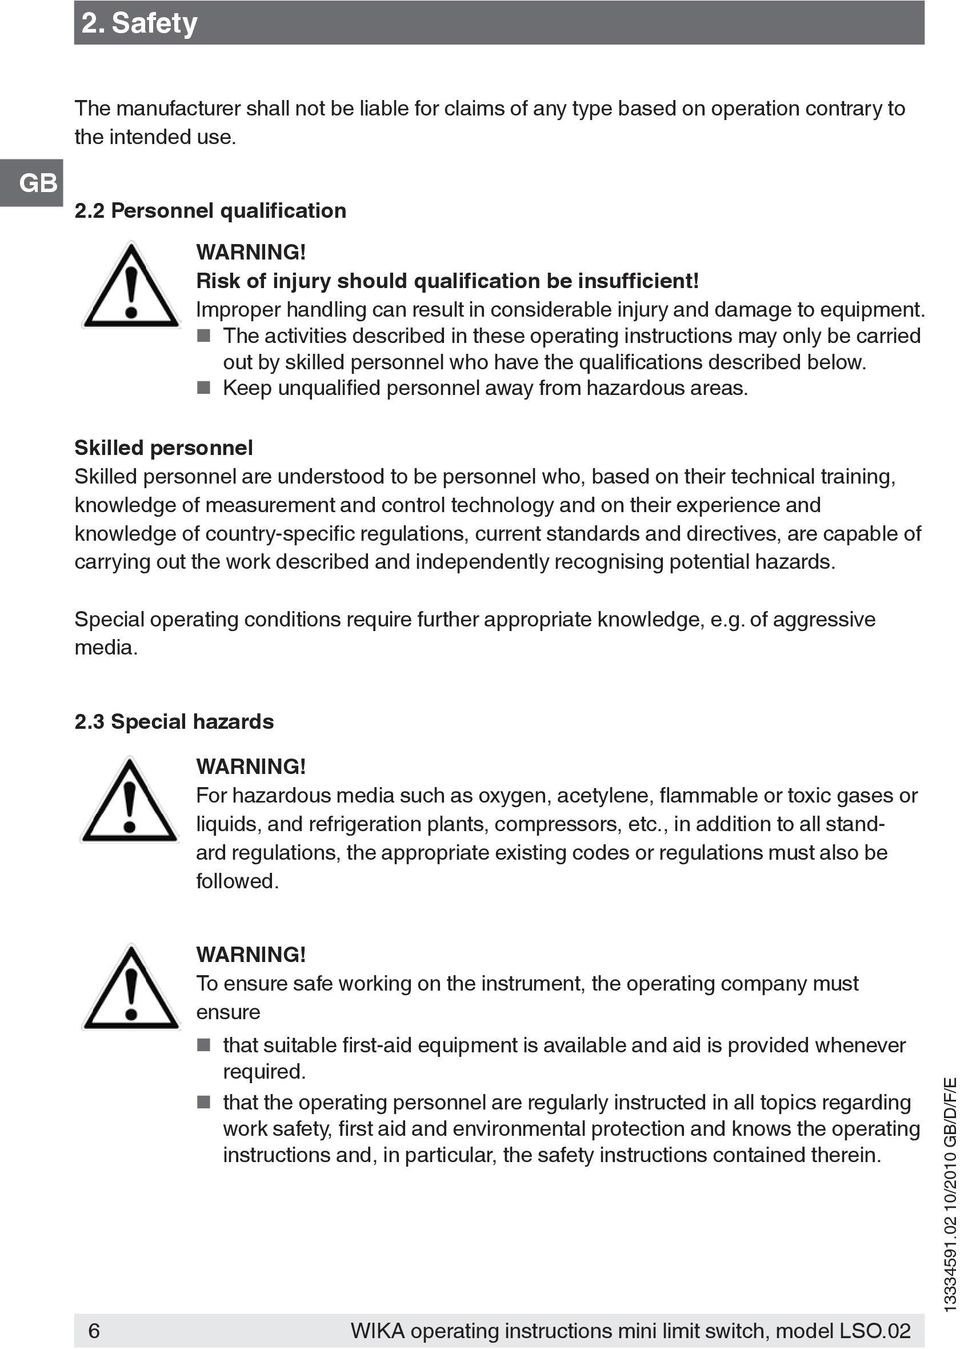 The activities described in these operating instructions may only be carried out by skilled personnel who have the qualifications described below. Keep unqualified personnel away from hazardous areas.